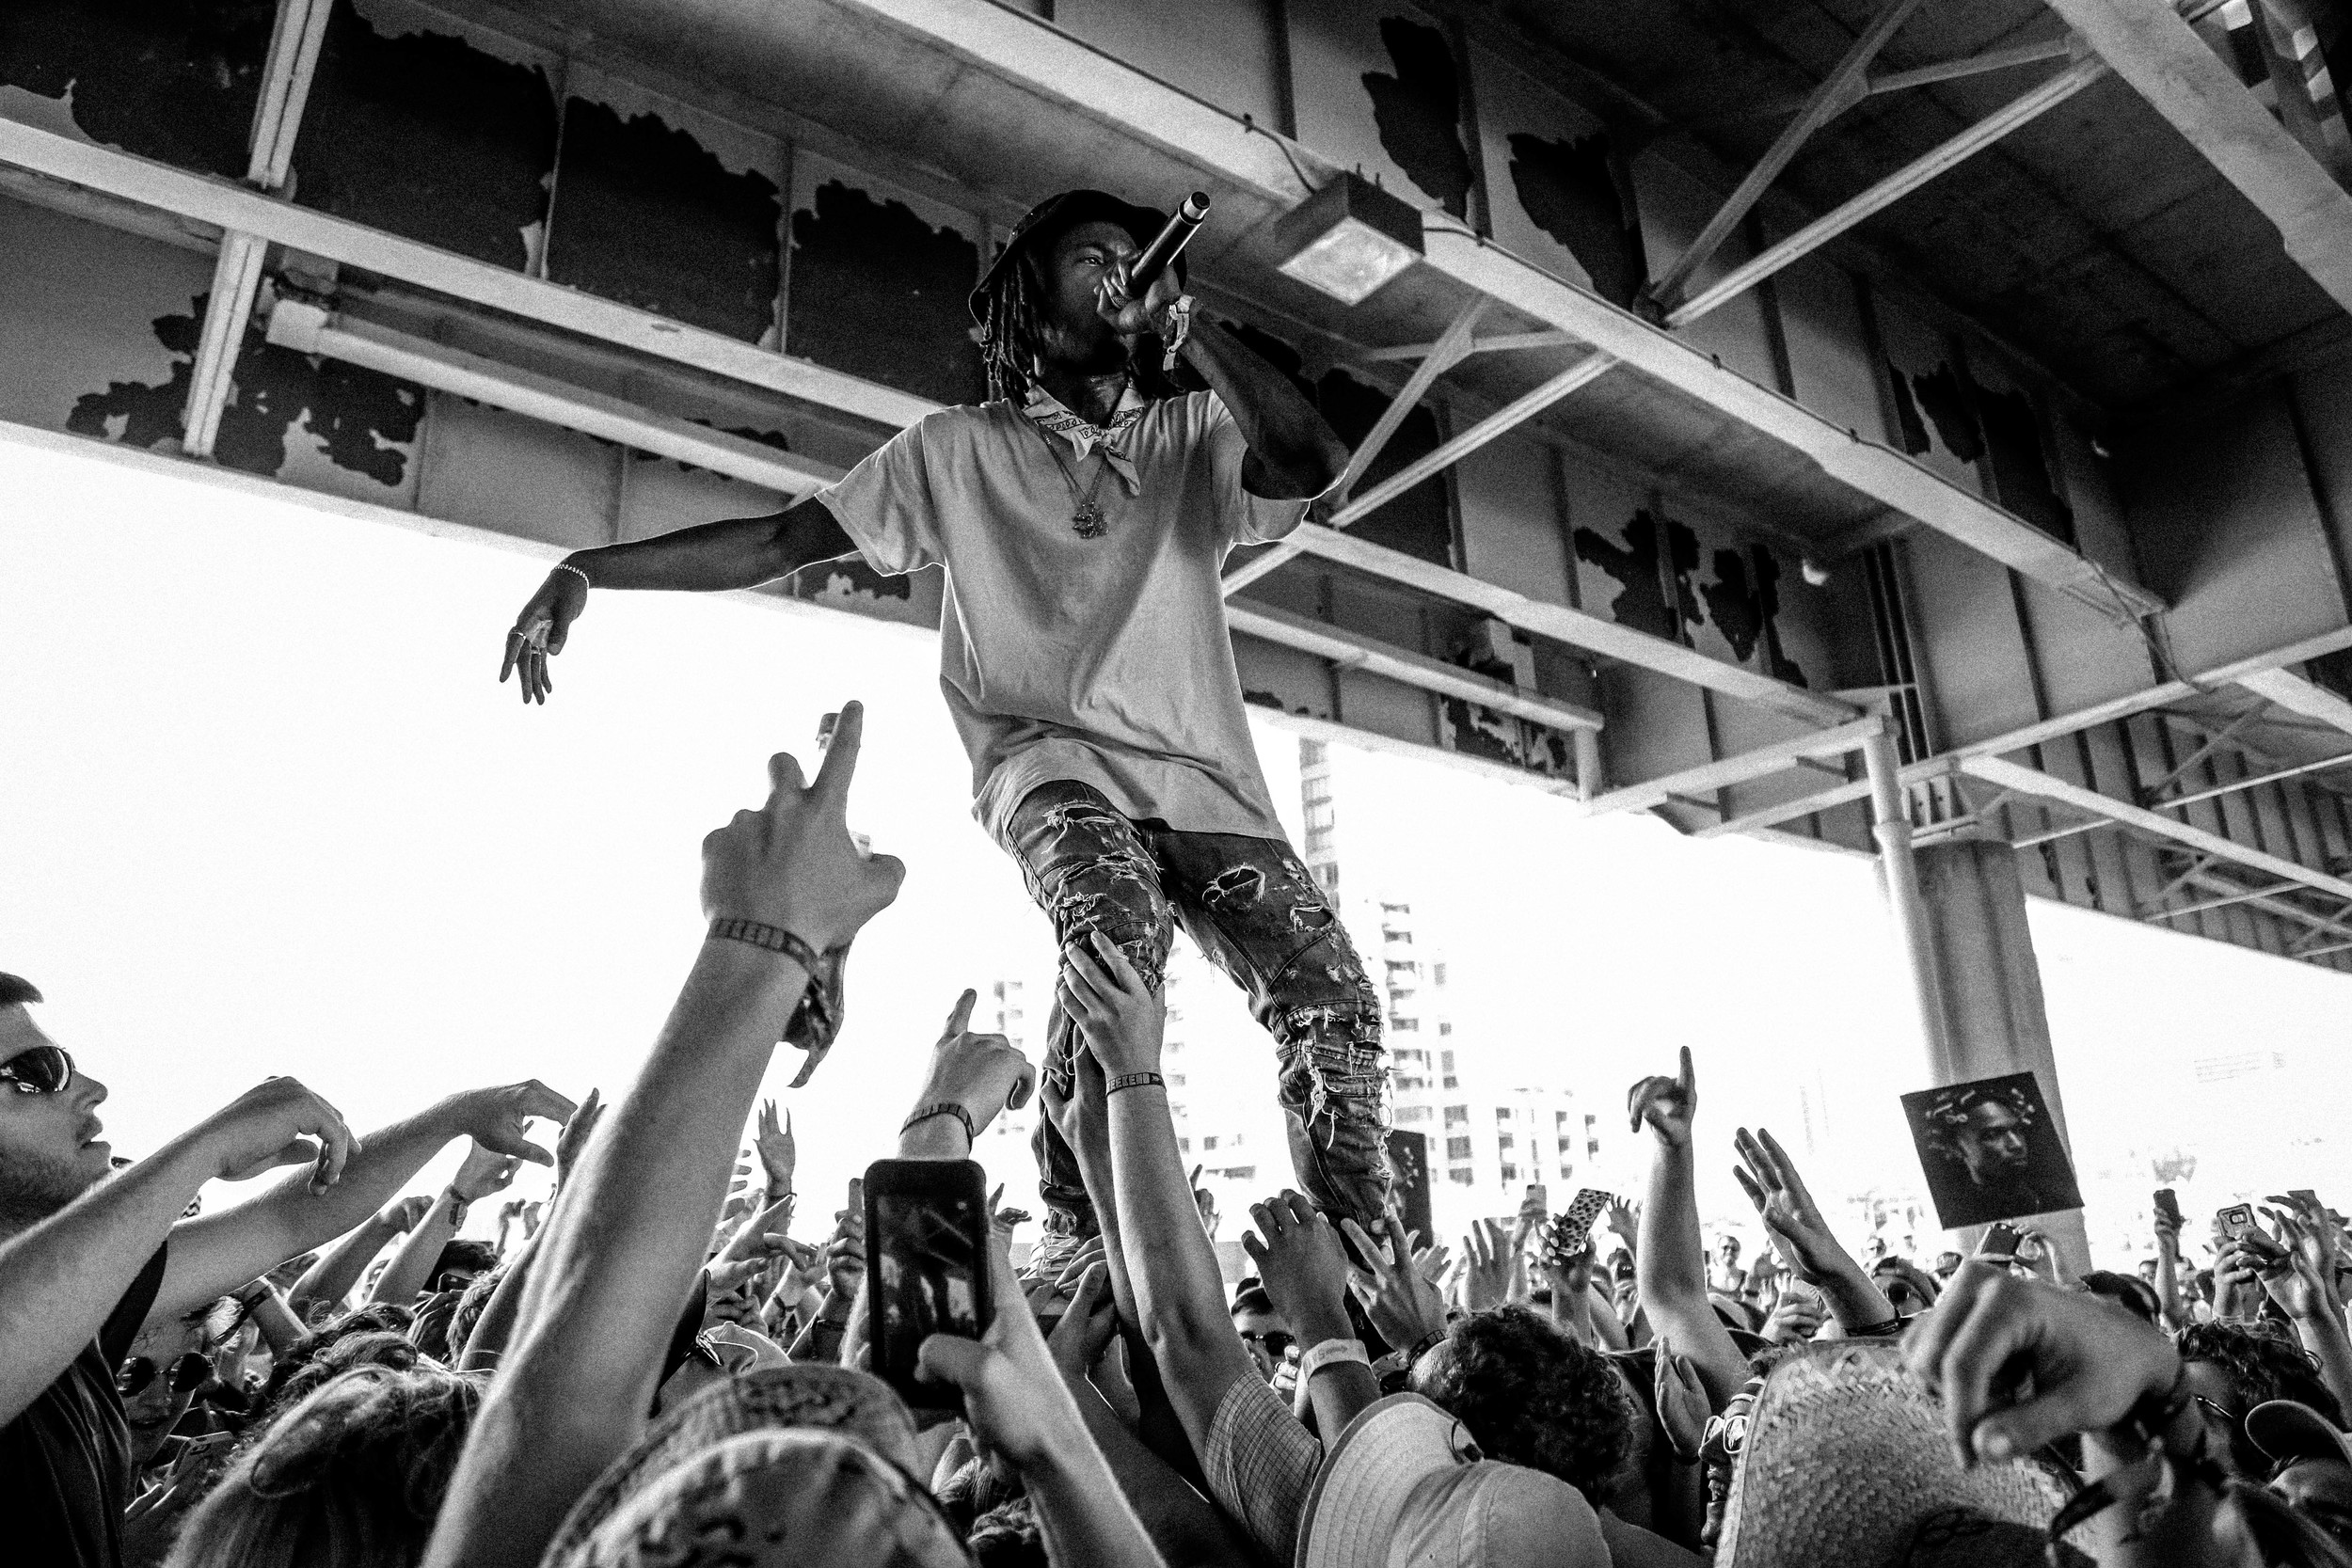 Jazz Cartier firing up the under-bridge at Forecastle 2016, photo by Fernanda Carpenter